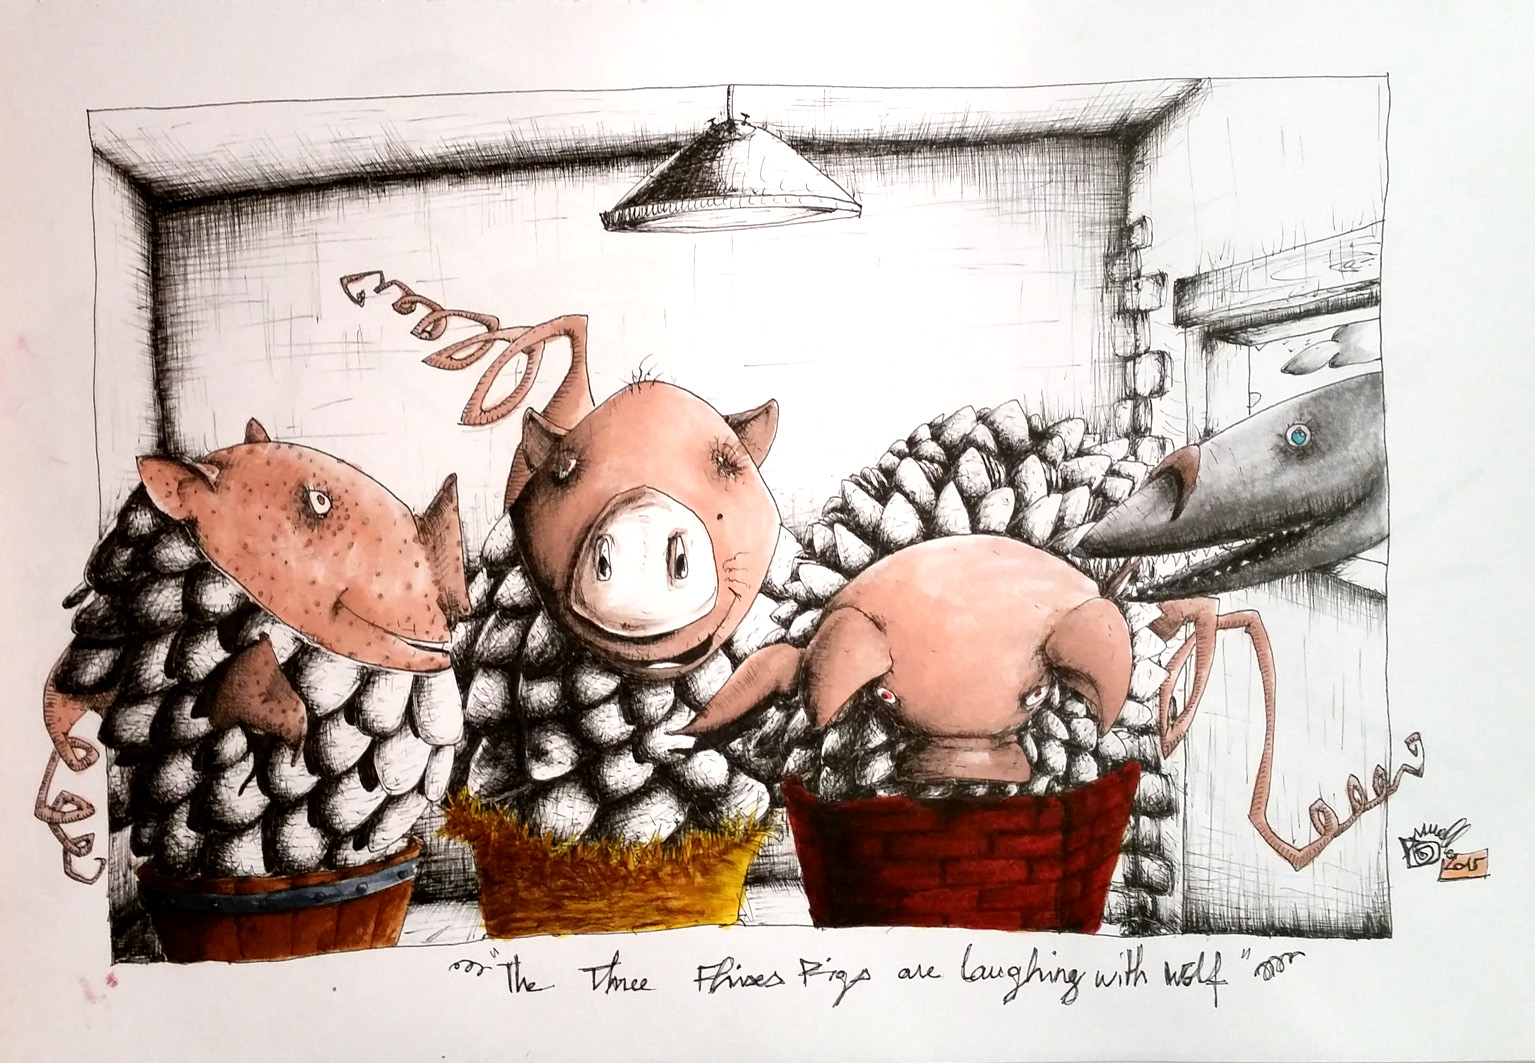 the three fish pigs